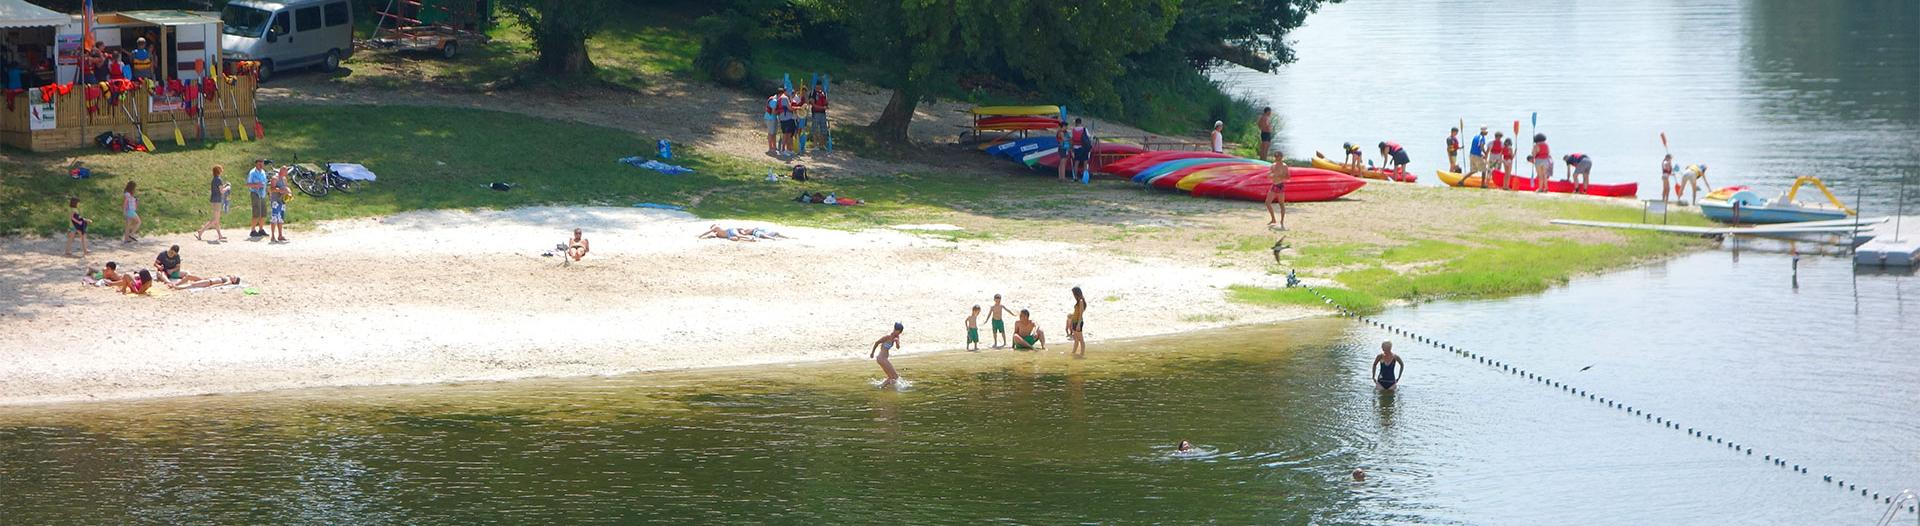 slider-camping port lalande-plage-sur-lot